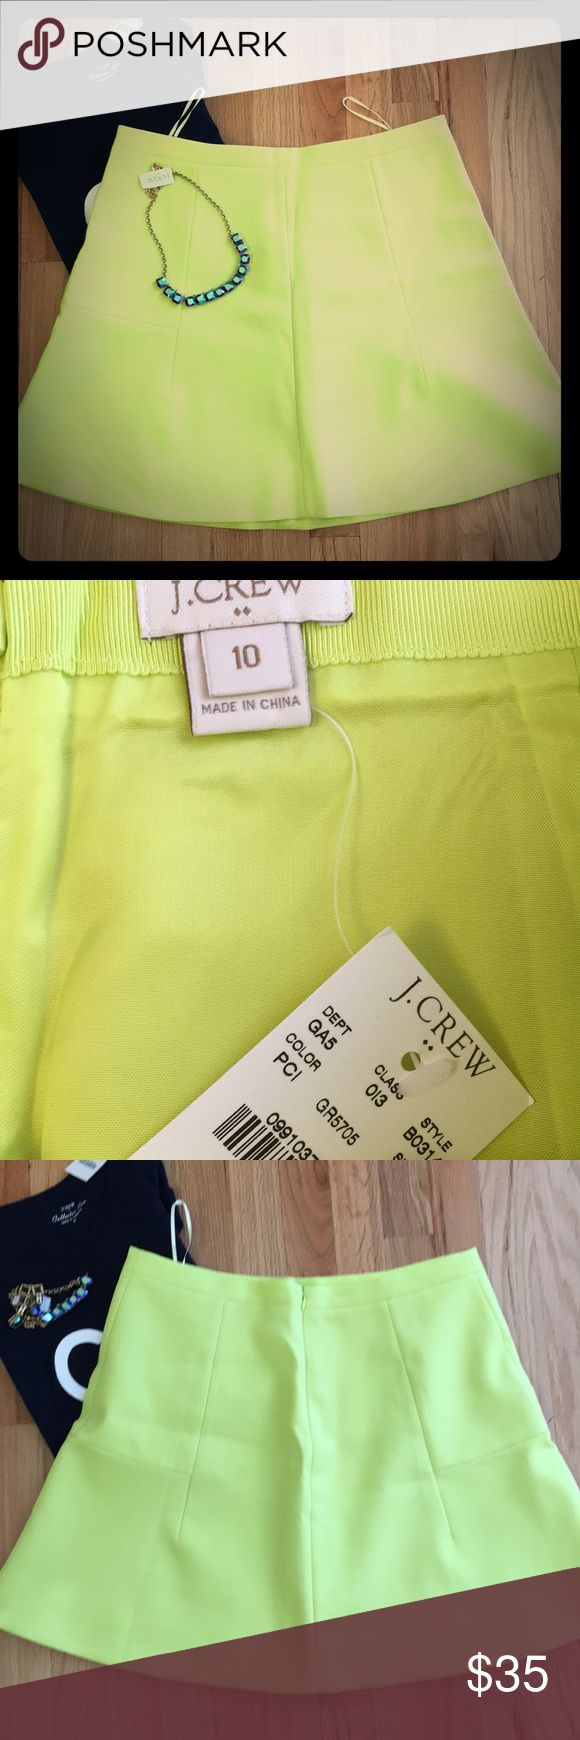 NWT J.Crew Neon Yellow Skirt. Sz 10. NWT J.Crew Neon Yellow Skirt (color is muted in the pictures, but skirt is a true neon yellow.) Sz 10. J. Crew Skirts Circle & Skater